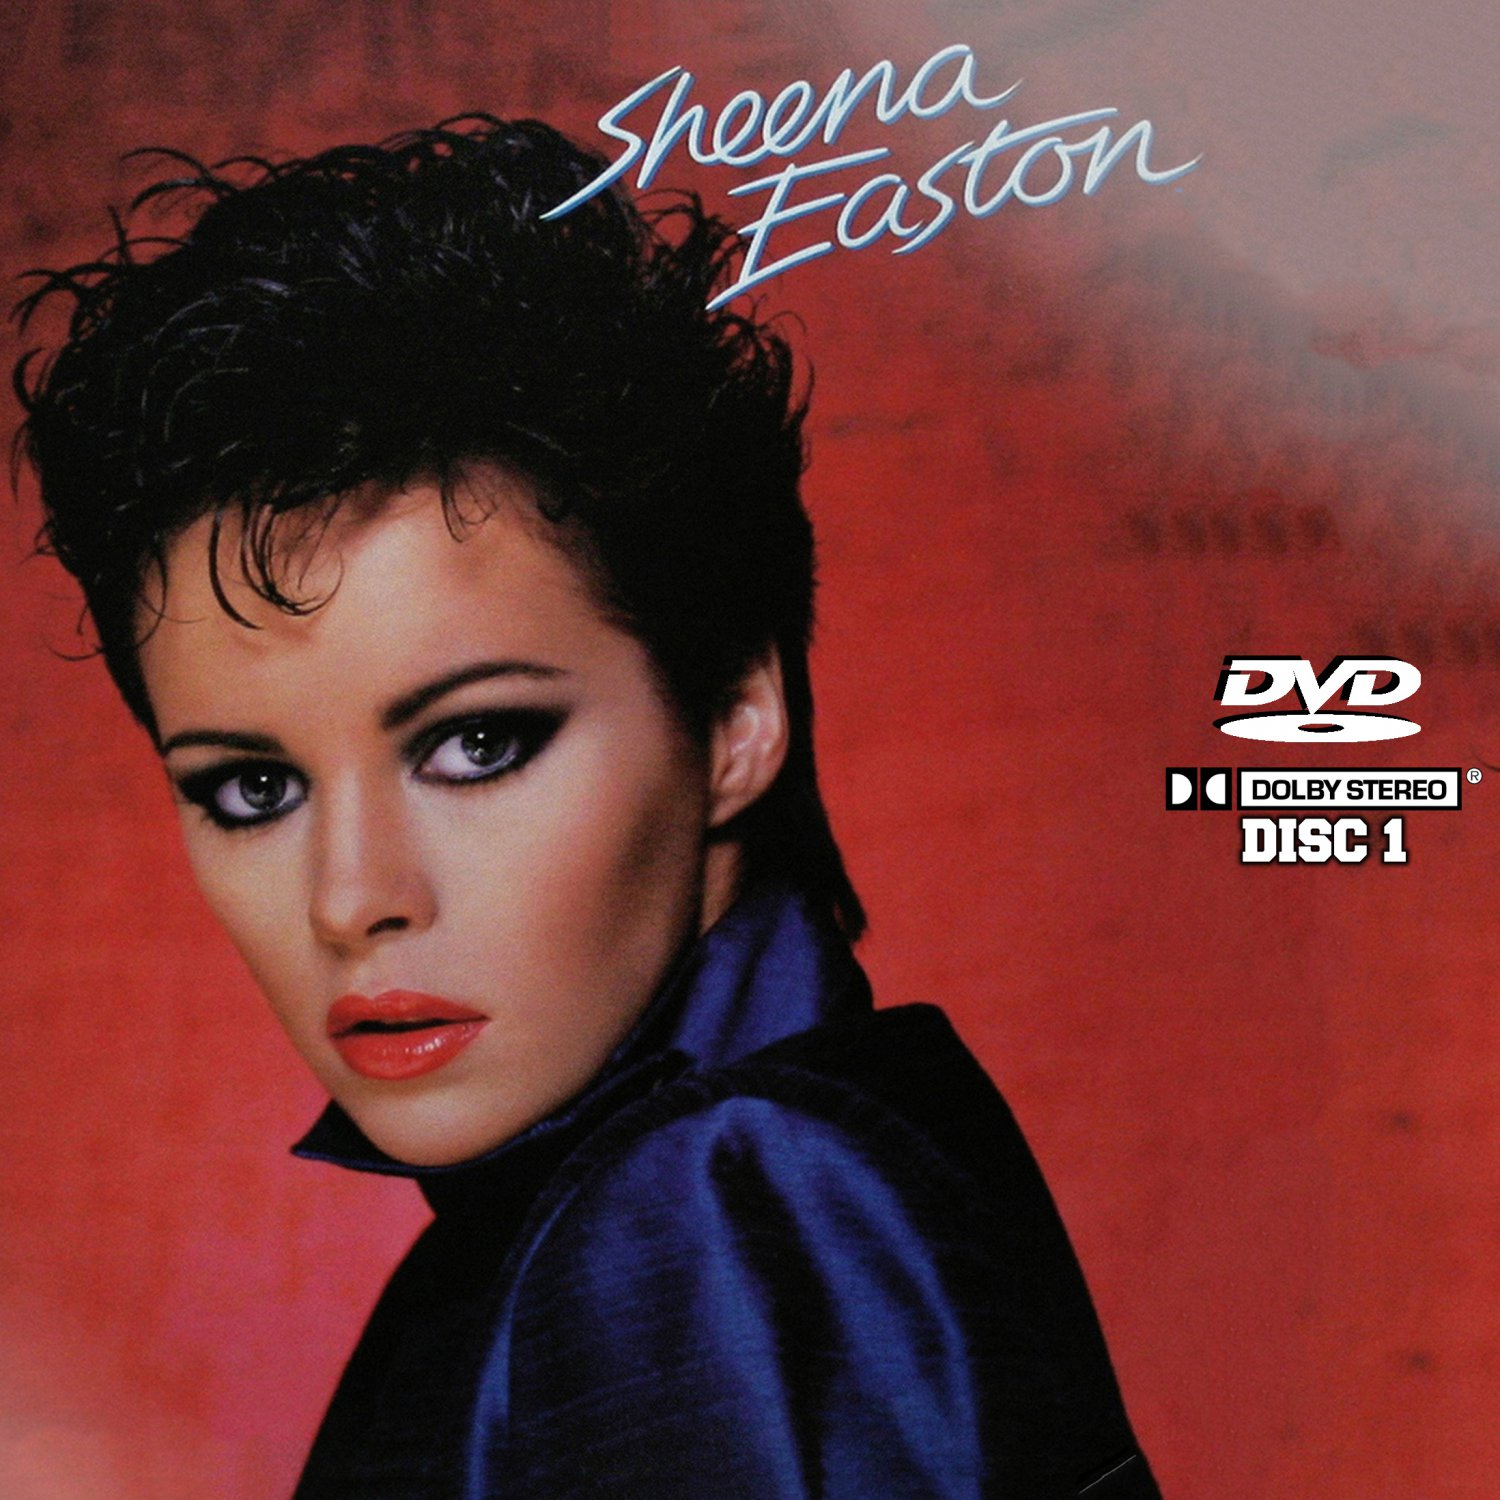 Sheena Easton Music Videos Collection Revised (2 DVD's) 40 Music Videos